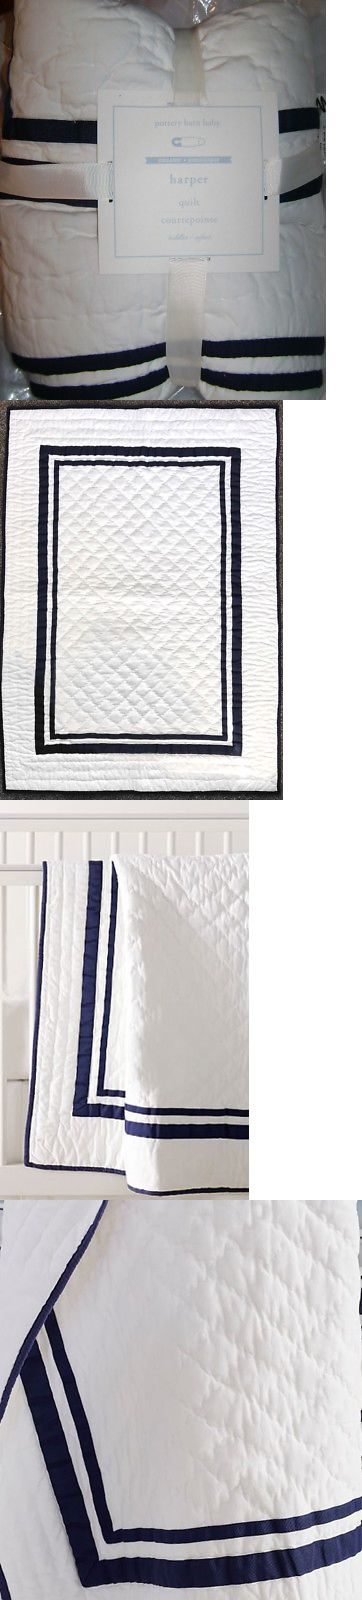 Quilts and Coverlets 180908: Pottery Barn 100% Cotton Harper White And Navy Toddler Crib Quilt Baby Blanket Nwt -> BUY IT NOW ONLY: $49.99 on eBay!